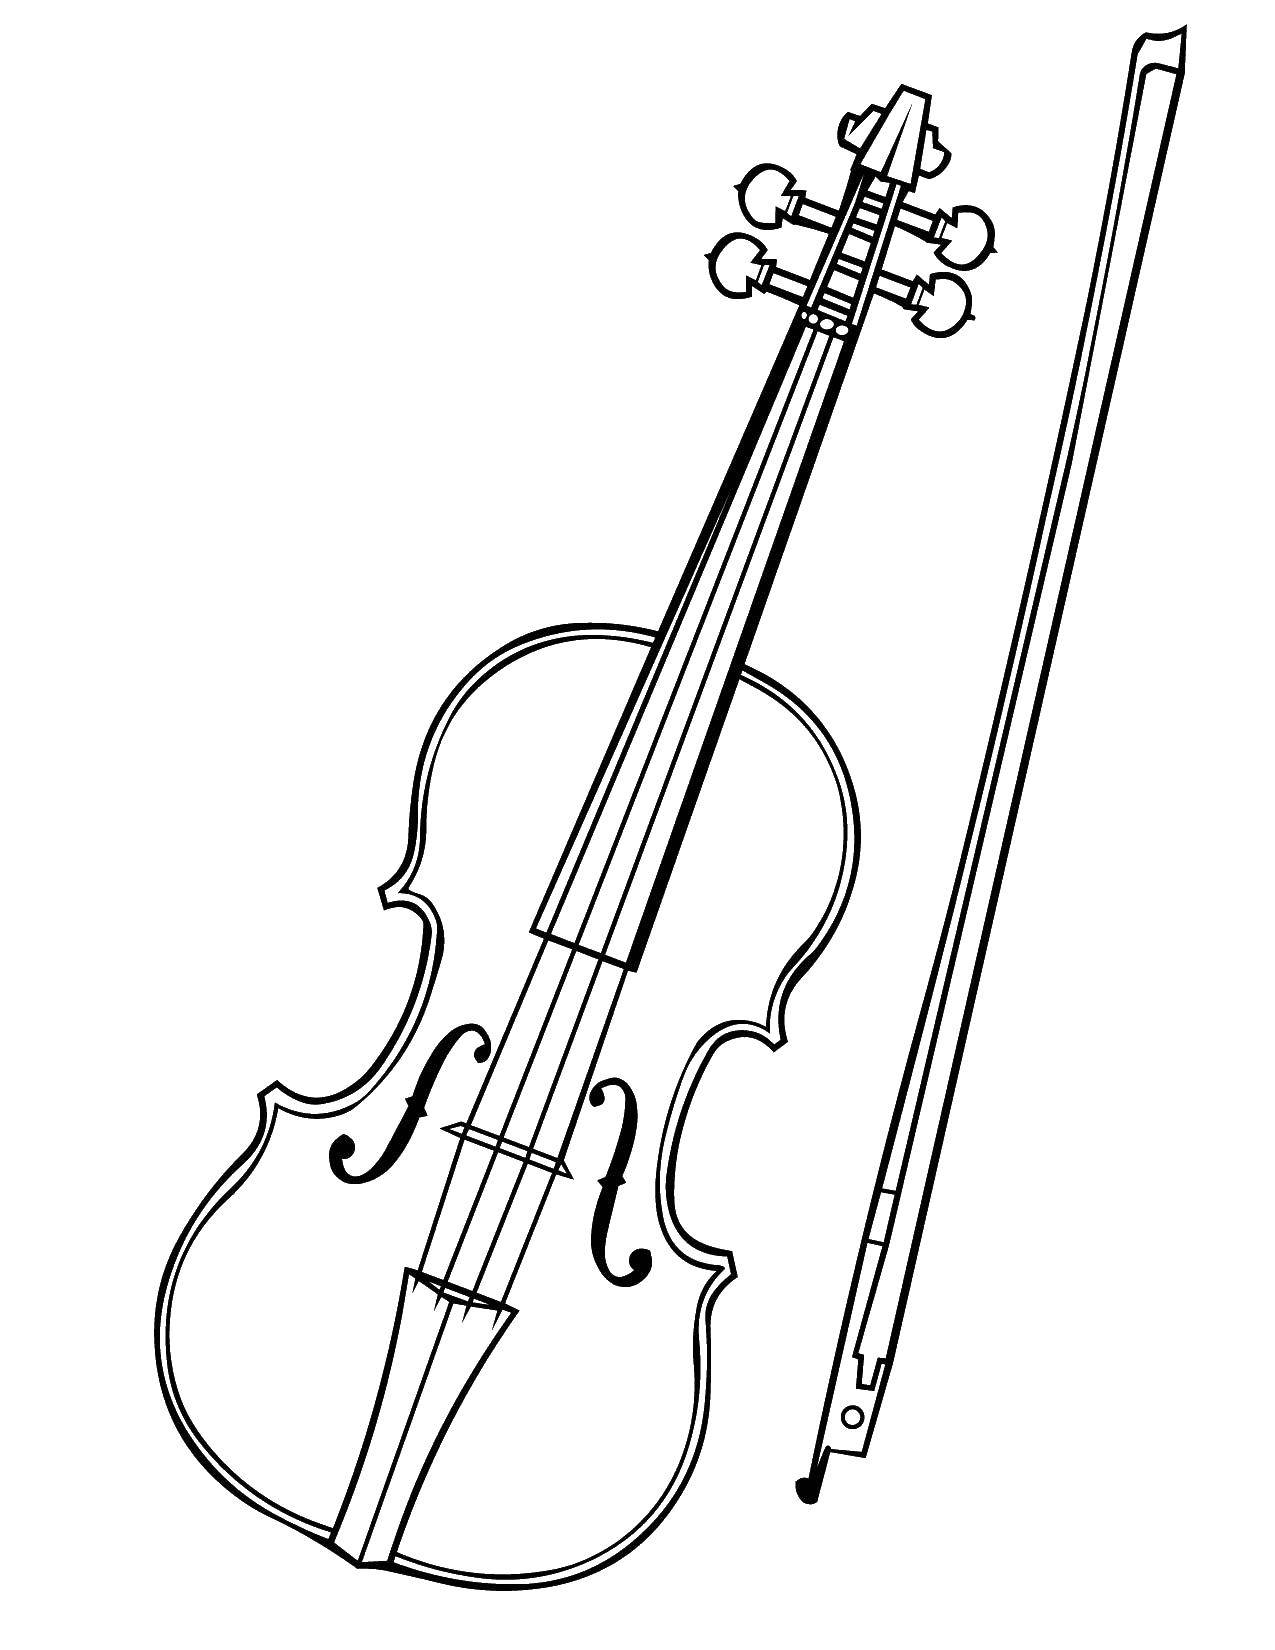 Coloring pages cello, poisk.